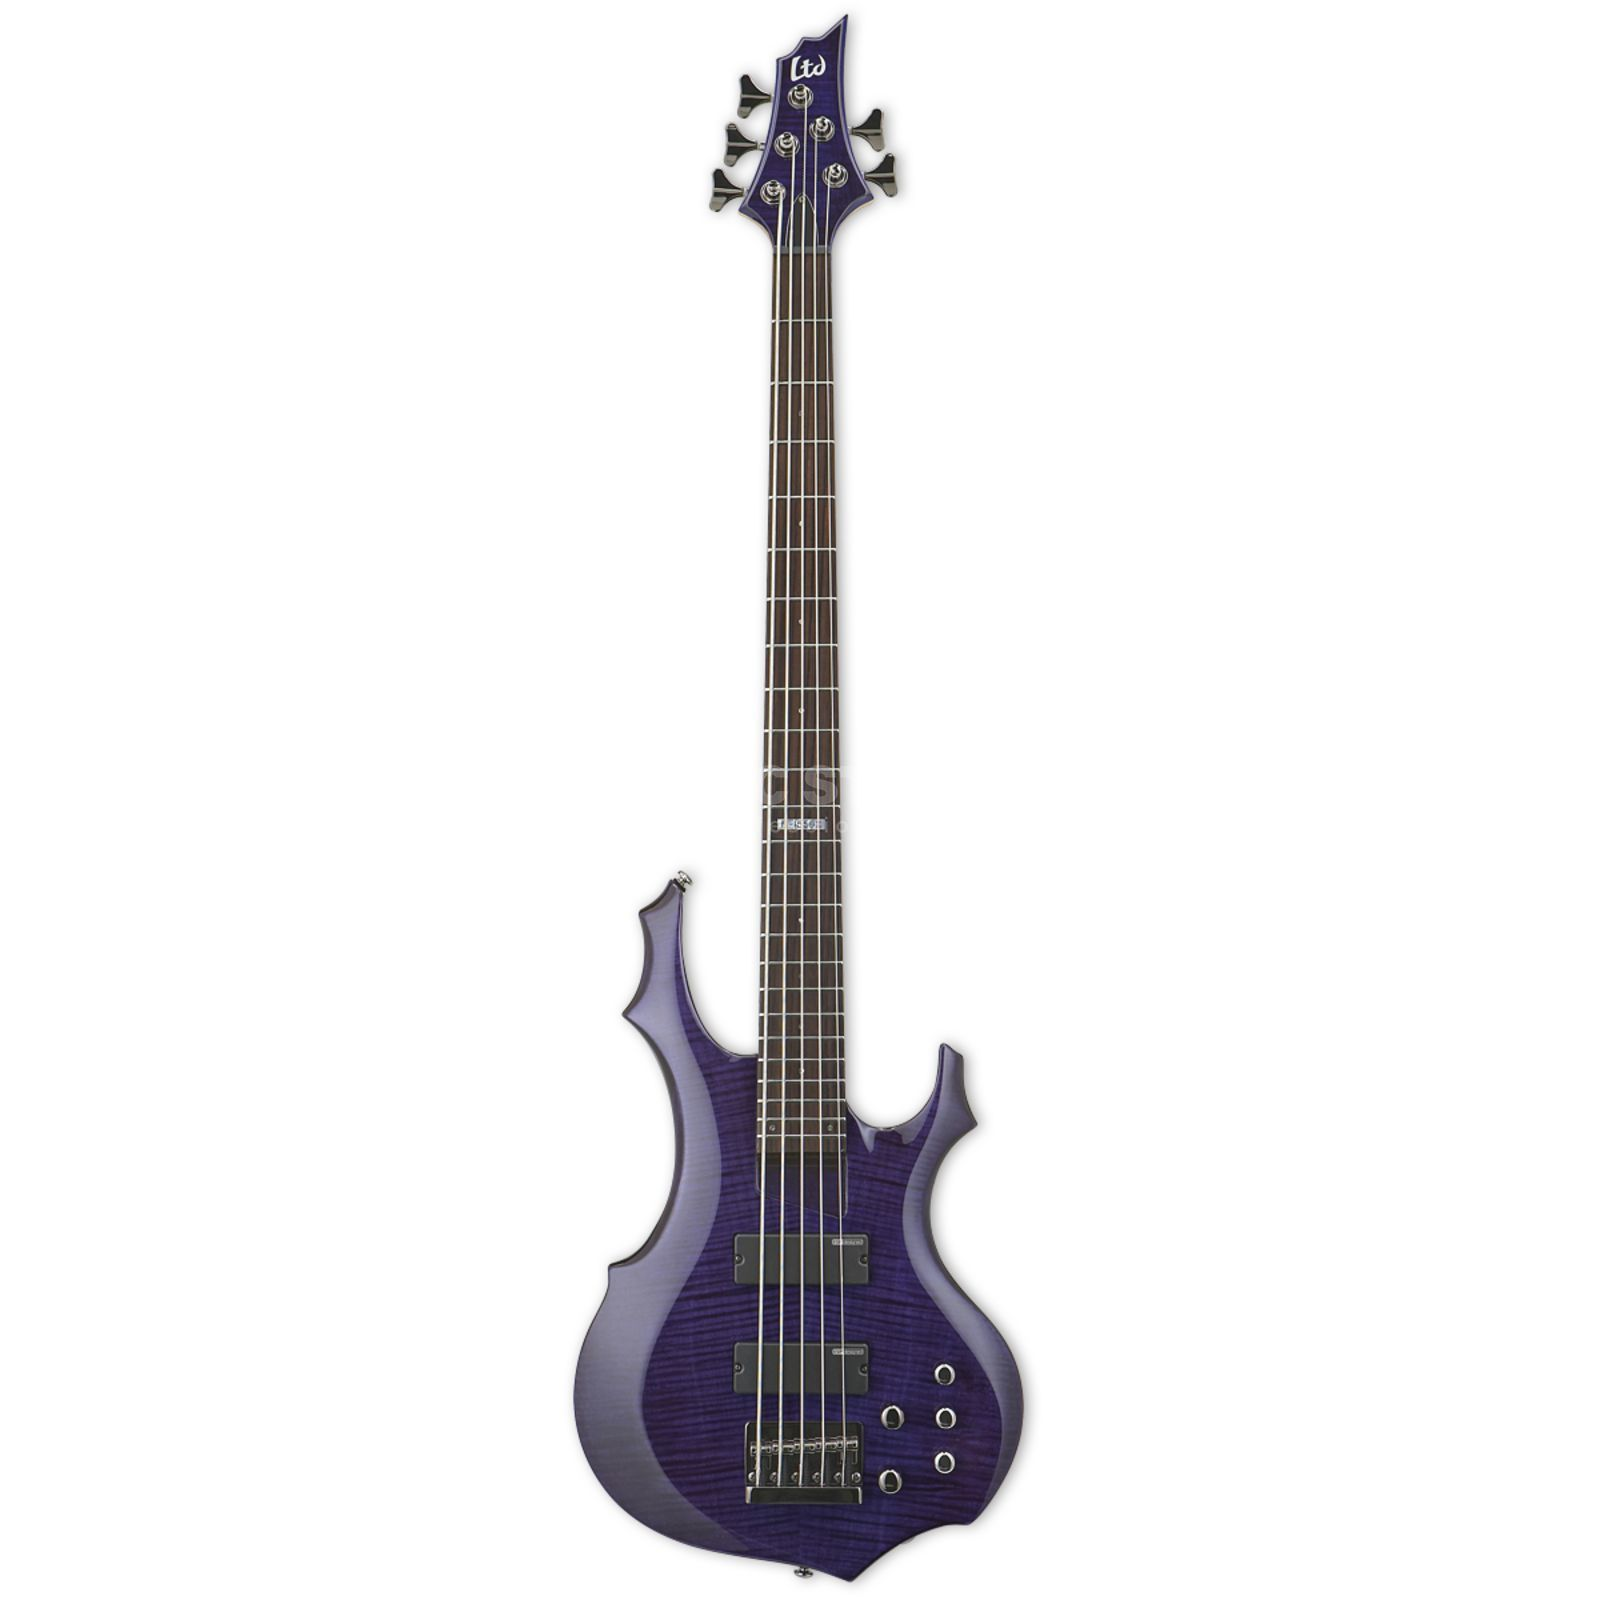 ESP LTD F-155DX Electric Bass Guit ar, Dark See Thru Purple   Immagine prodotto